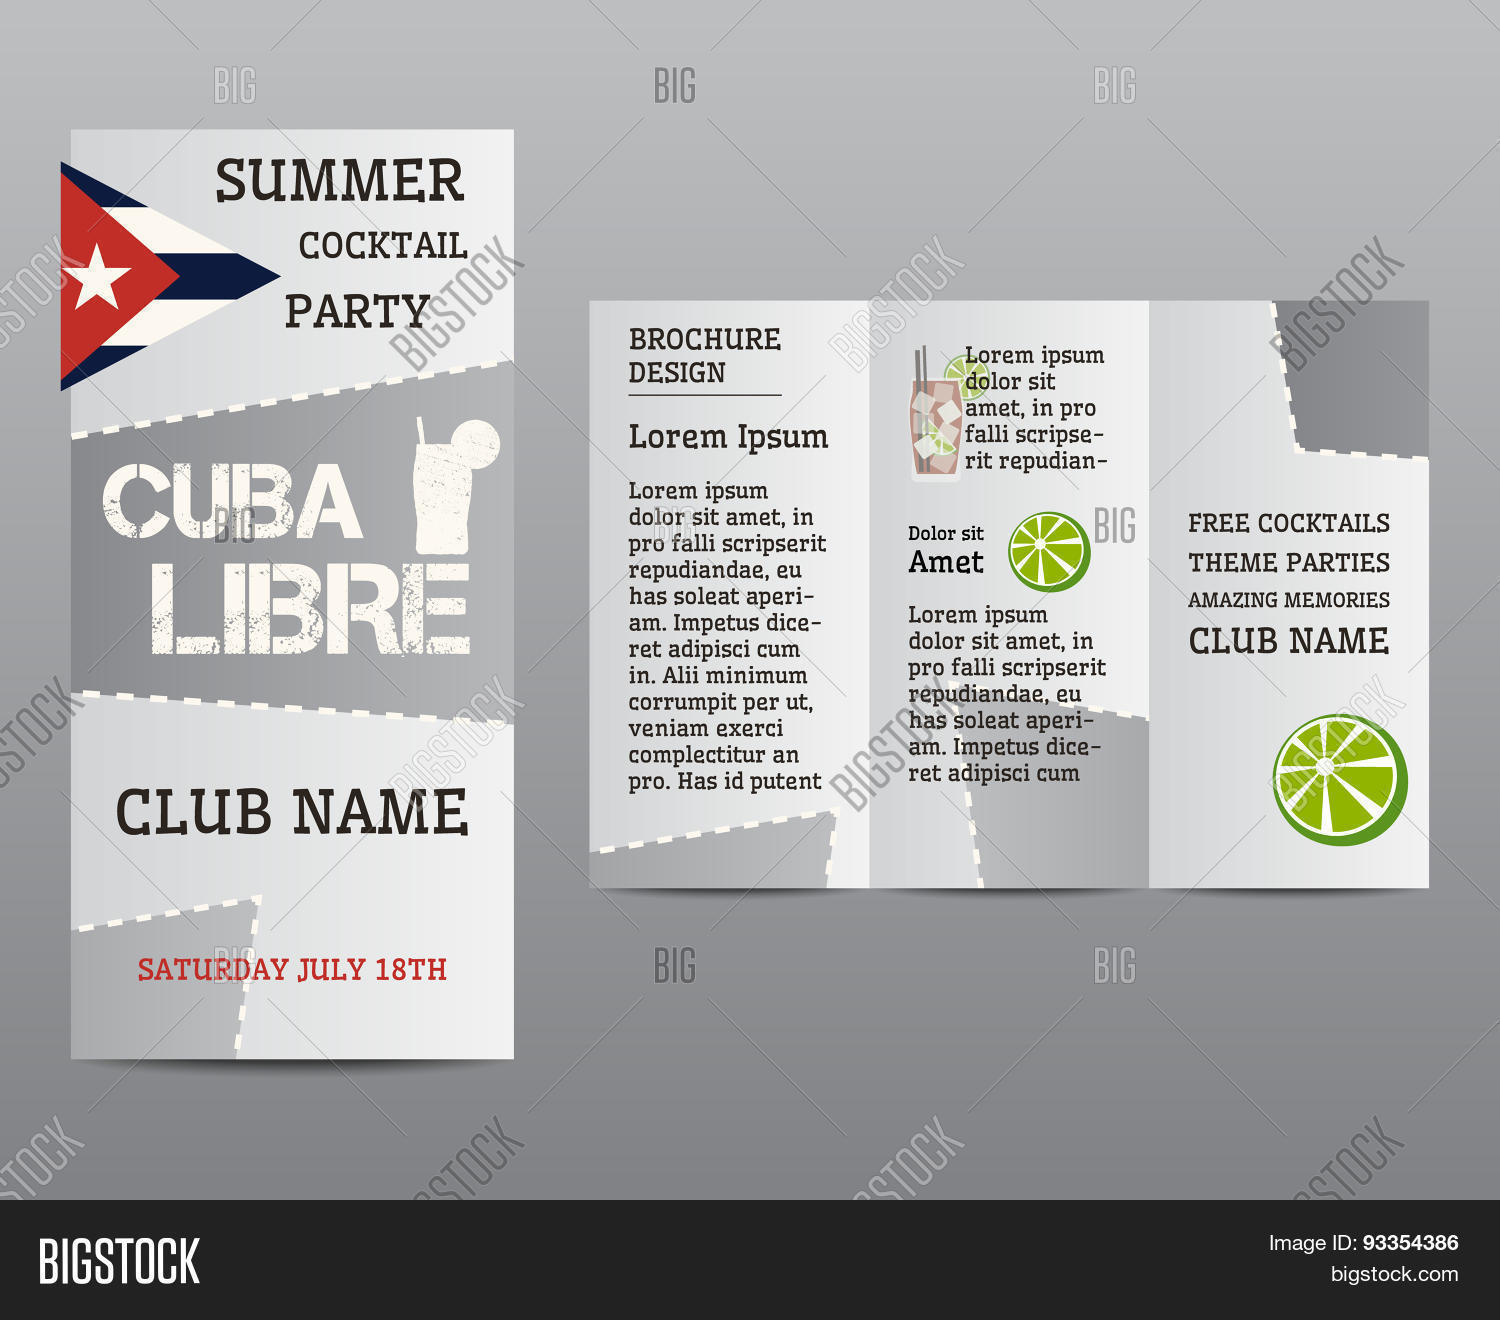 summer cocktail party flyer invitation template libre summer cocktail party flyer invitation template libre cocktail and infographic elements m